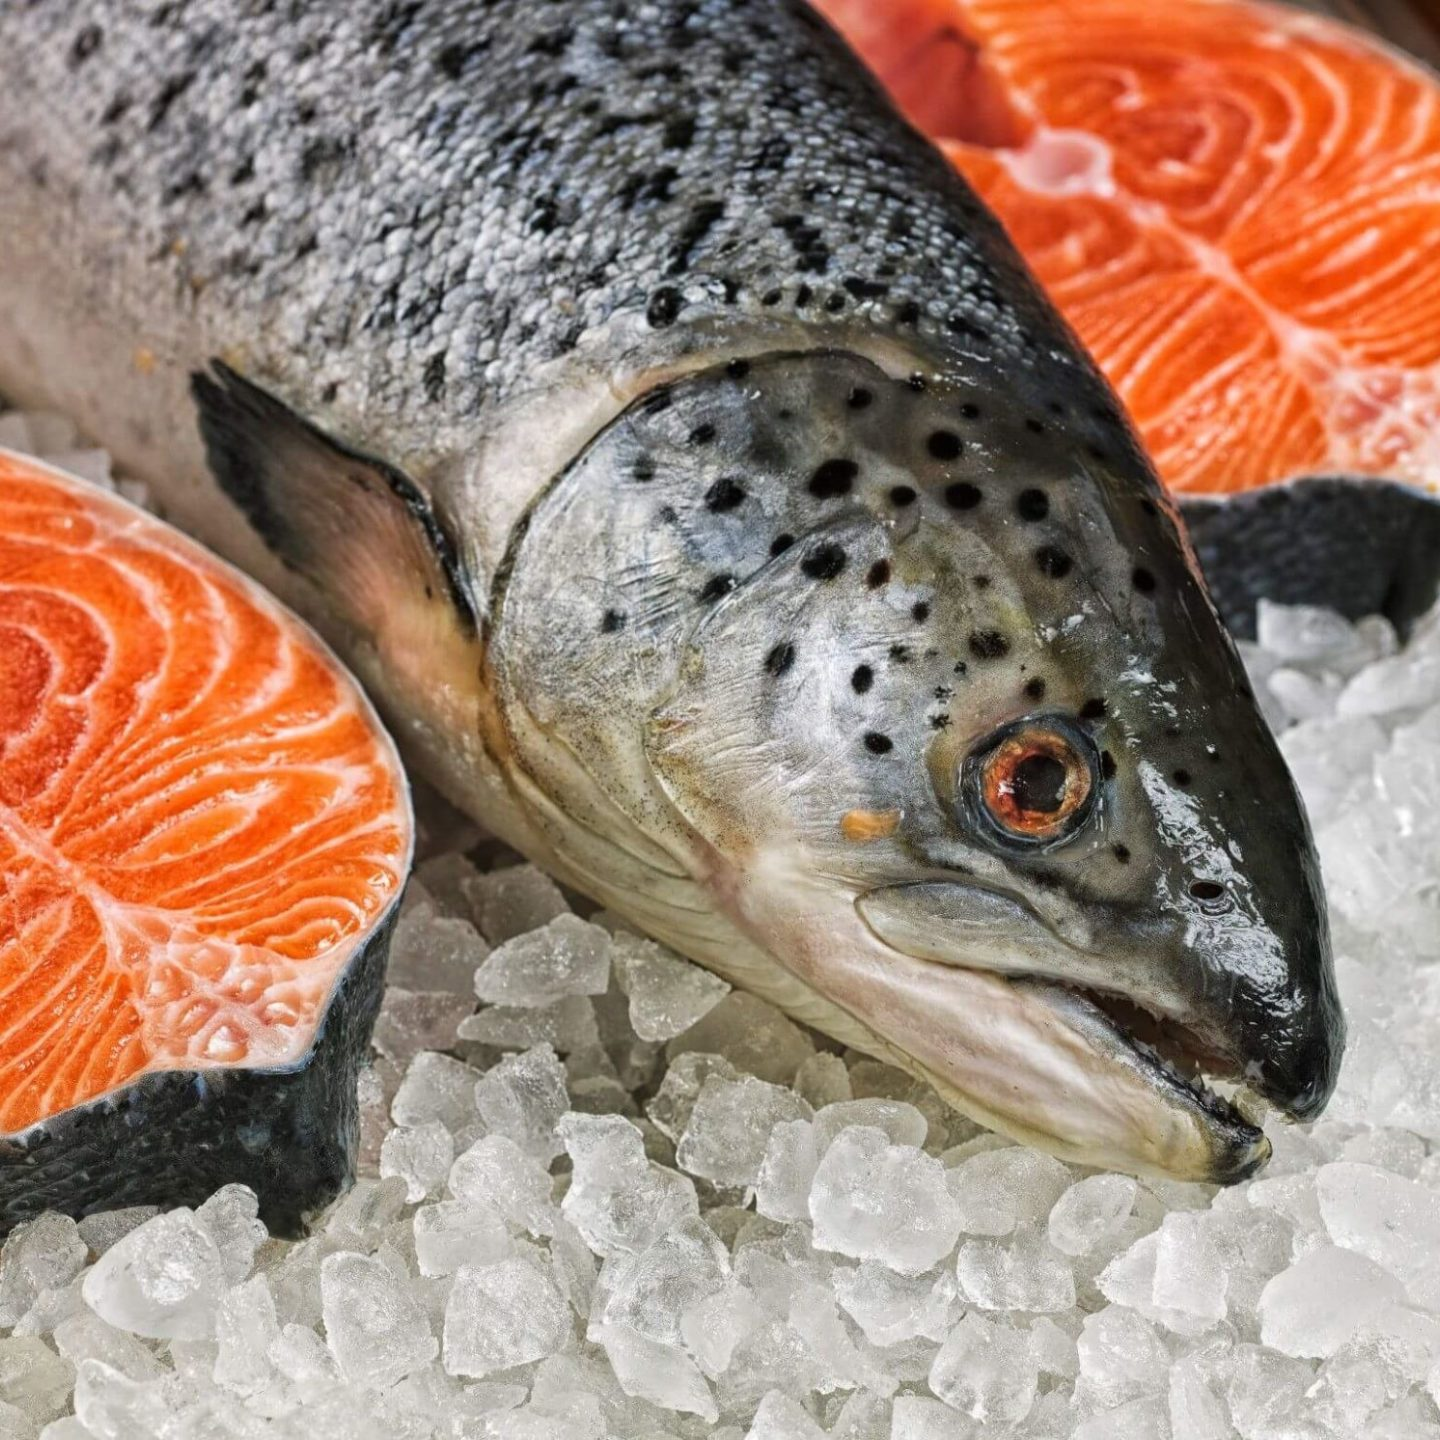 Fish resting on ice - Tips on Making Sure Your Fish Is Real | NSF International